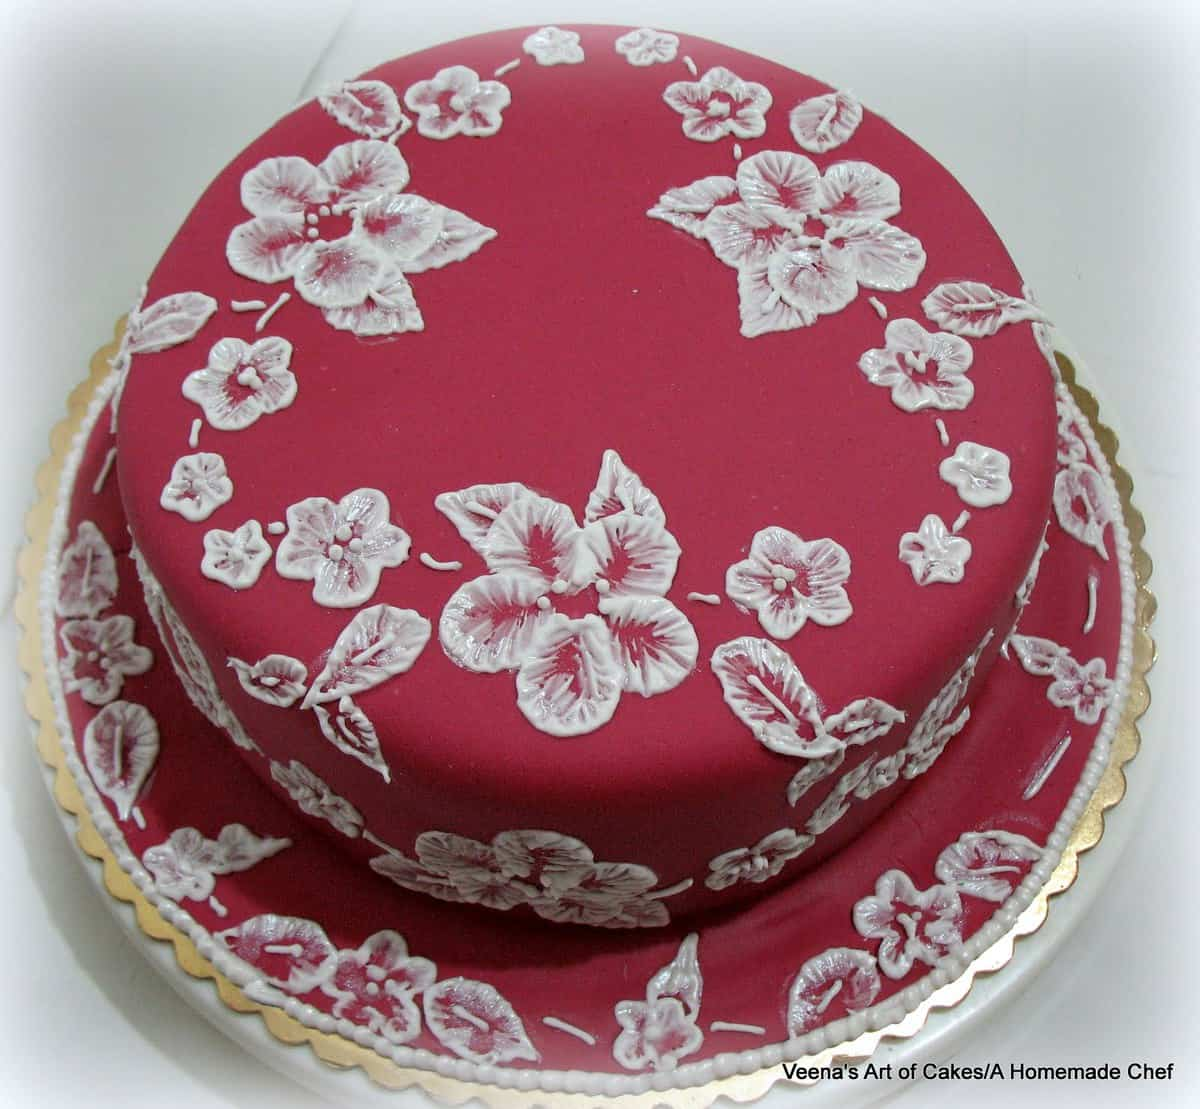 A cake with royal icing brush embroidery